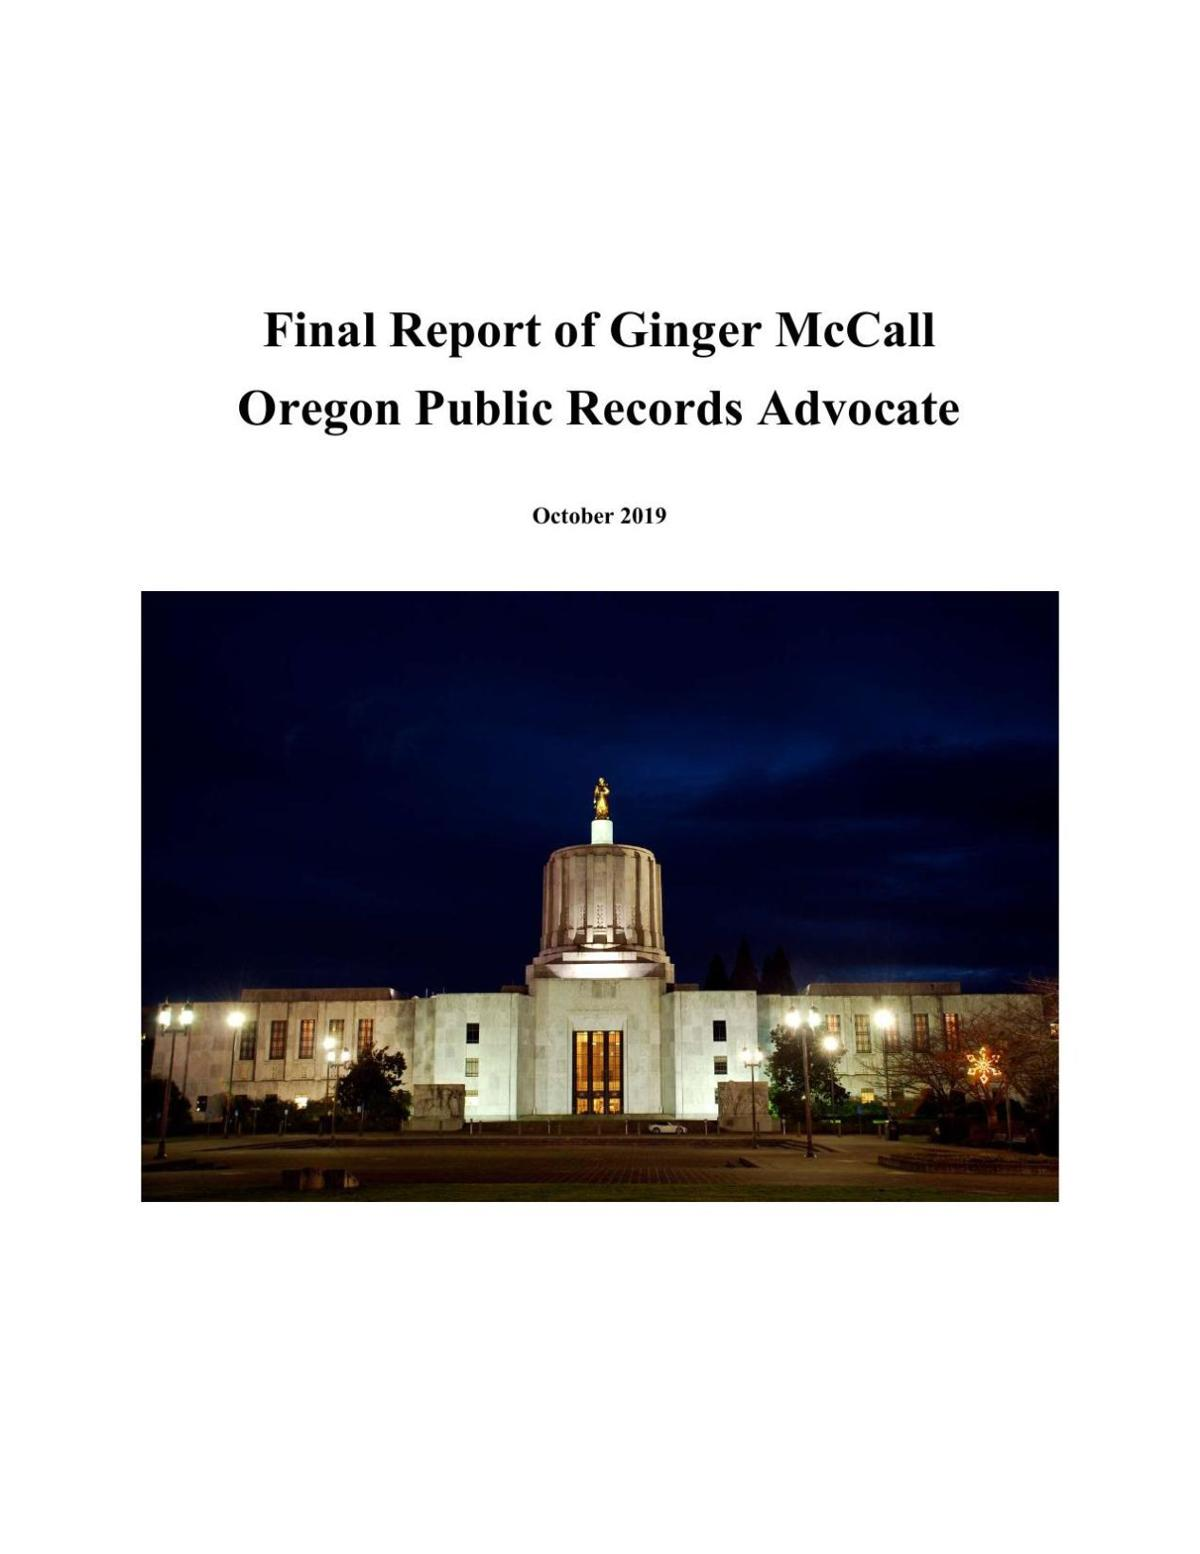 Ginger McCall's final report